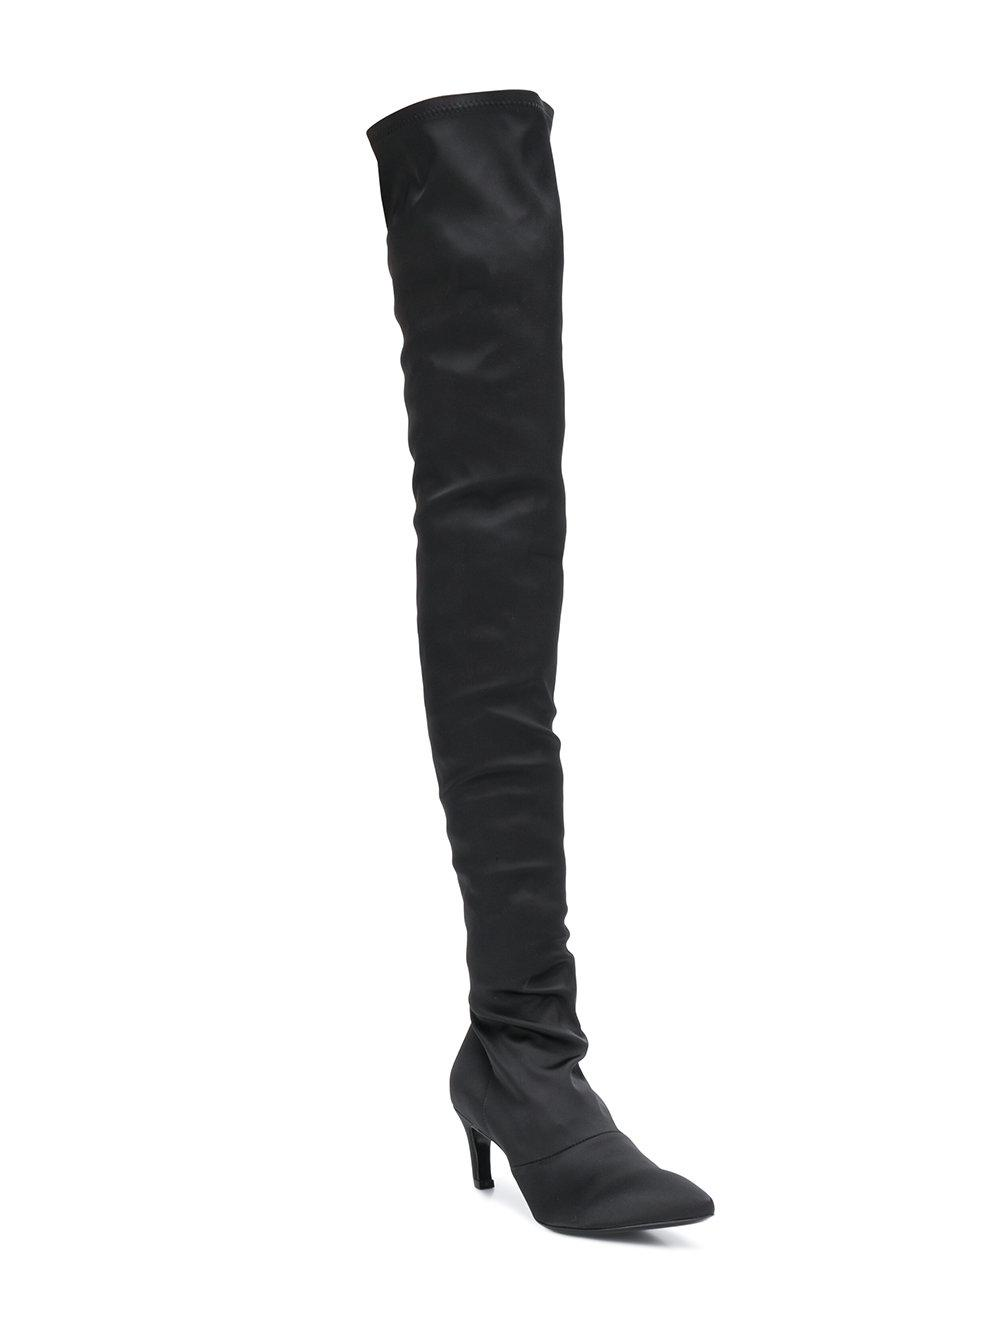 Marc Ellis Leather Heeled Thigh High Boots in Black